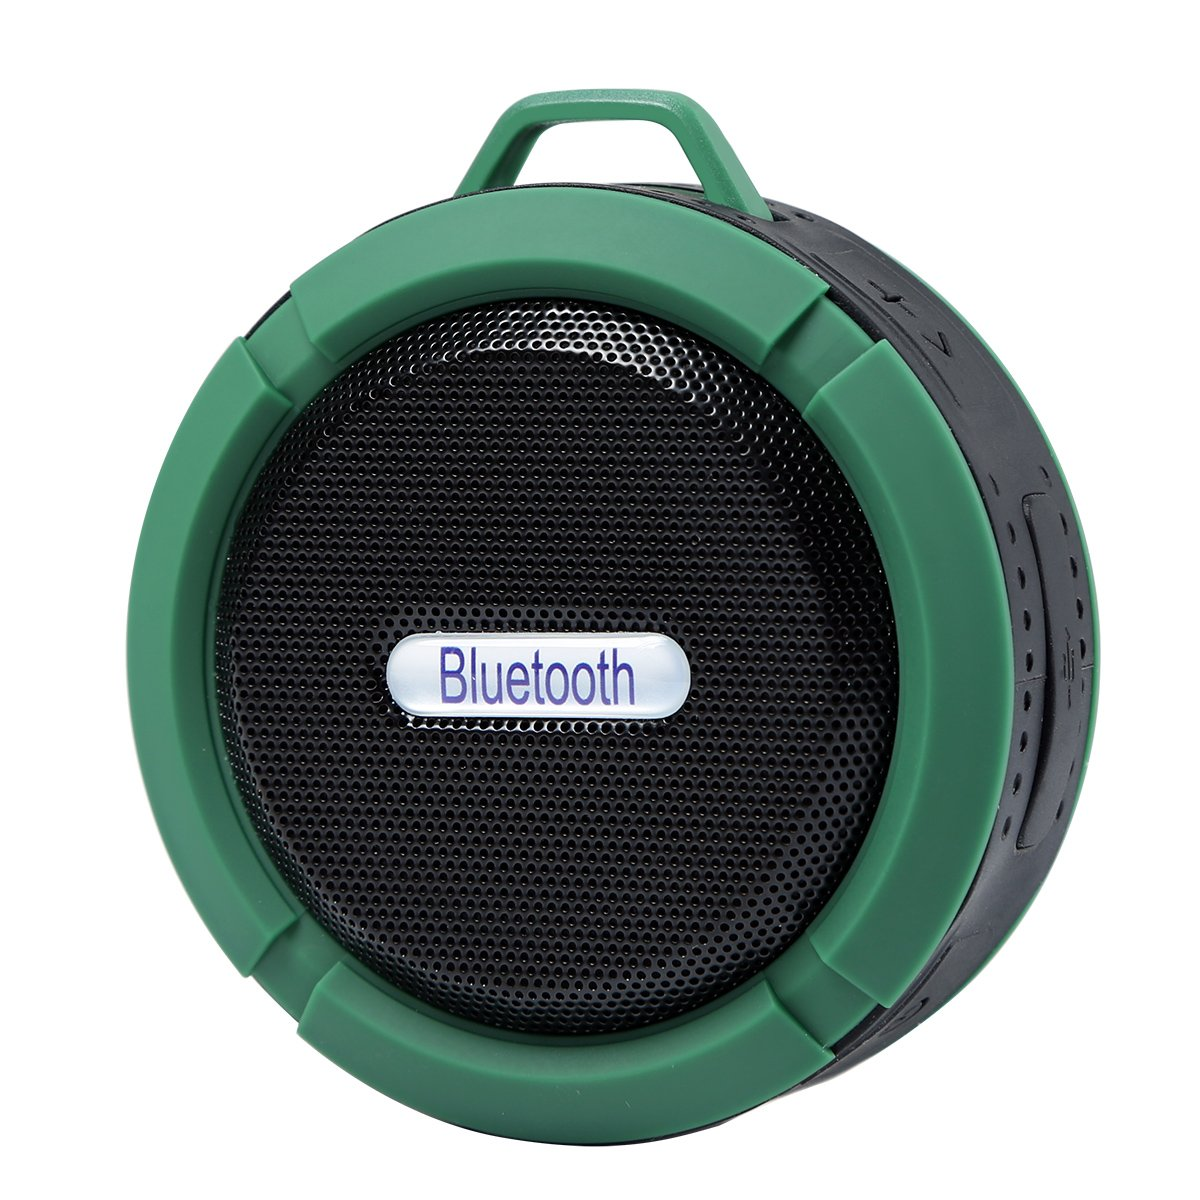 Portable Speakers Bluetooth Waterproof Ipx6 Wireless Outdoor For Phone For Phone Laptop Suction Cup, Built-In Mic, Water Resistant,Beach, Shower & Home (Green)